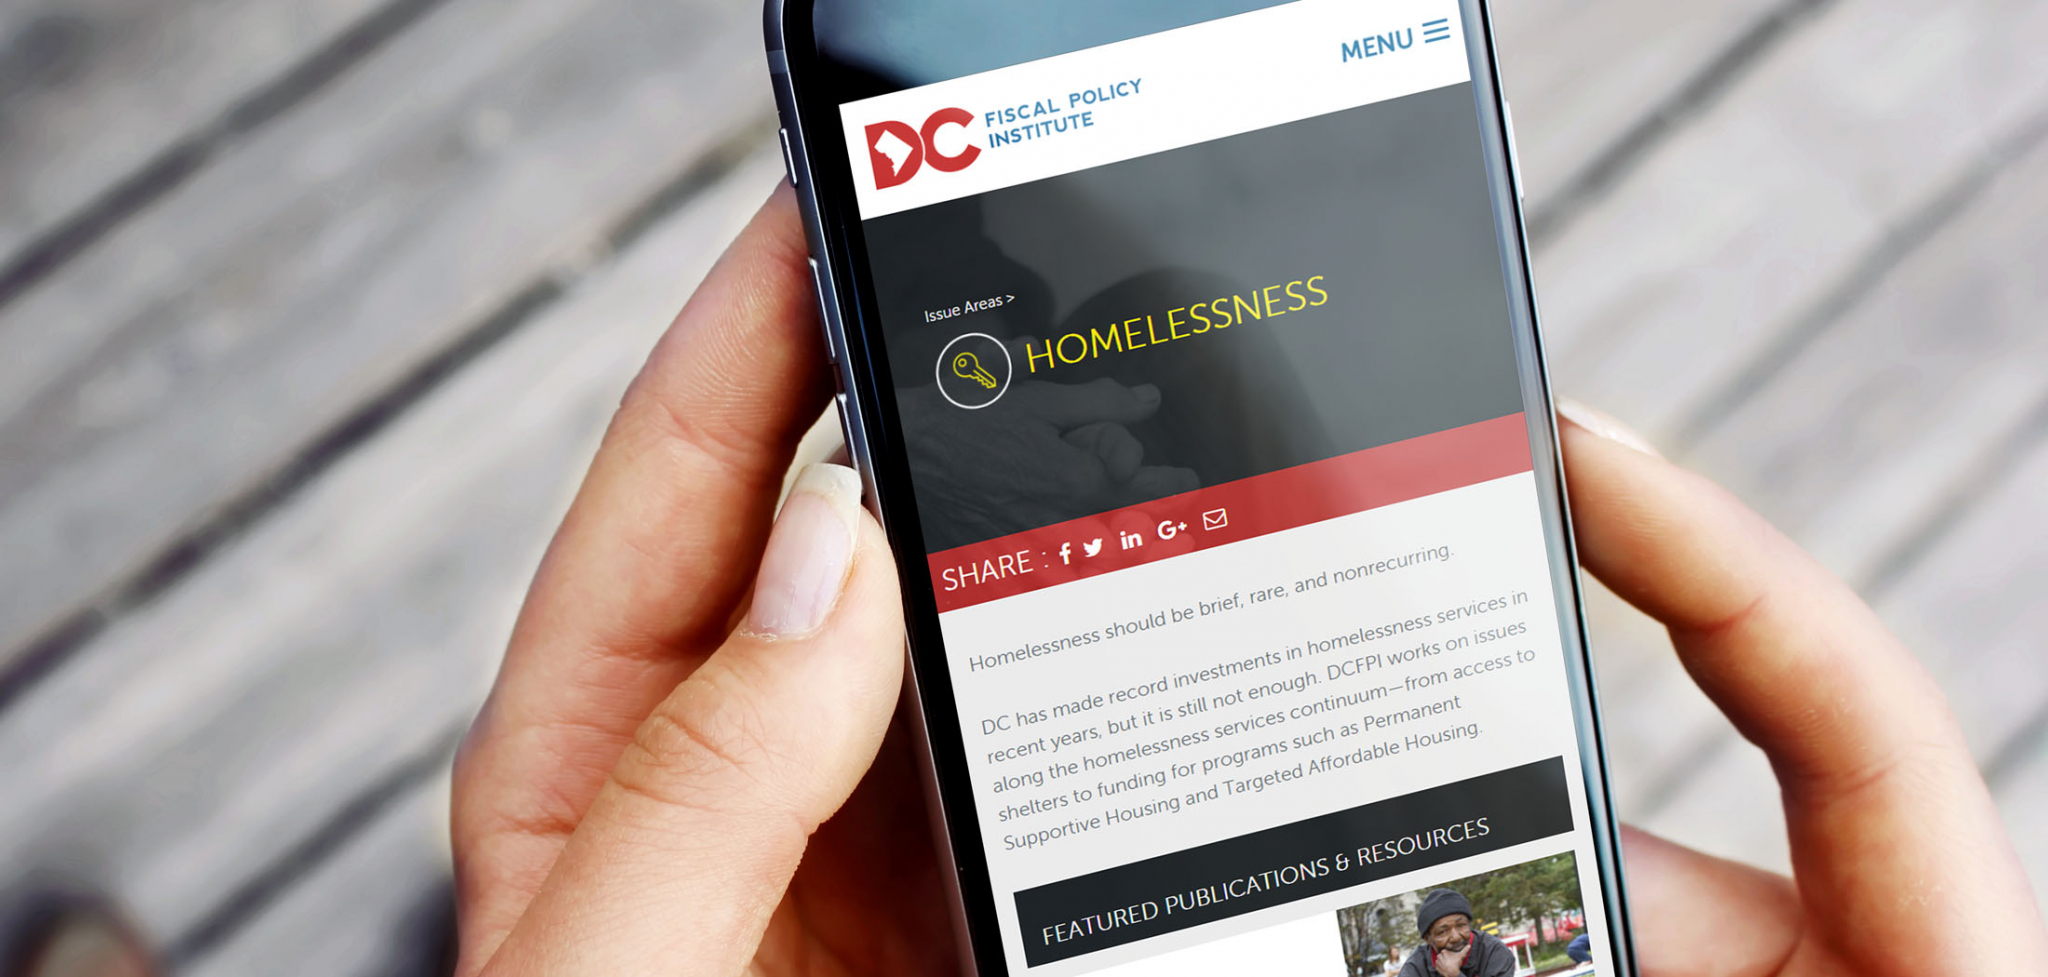 Policy Think Tank Website Designs for Mobile